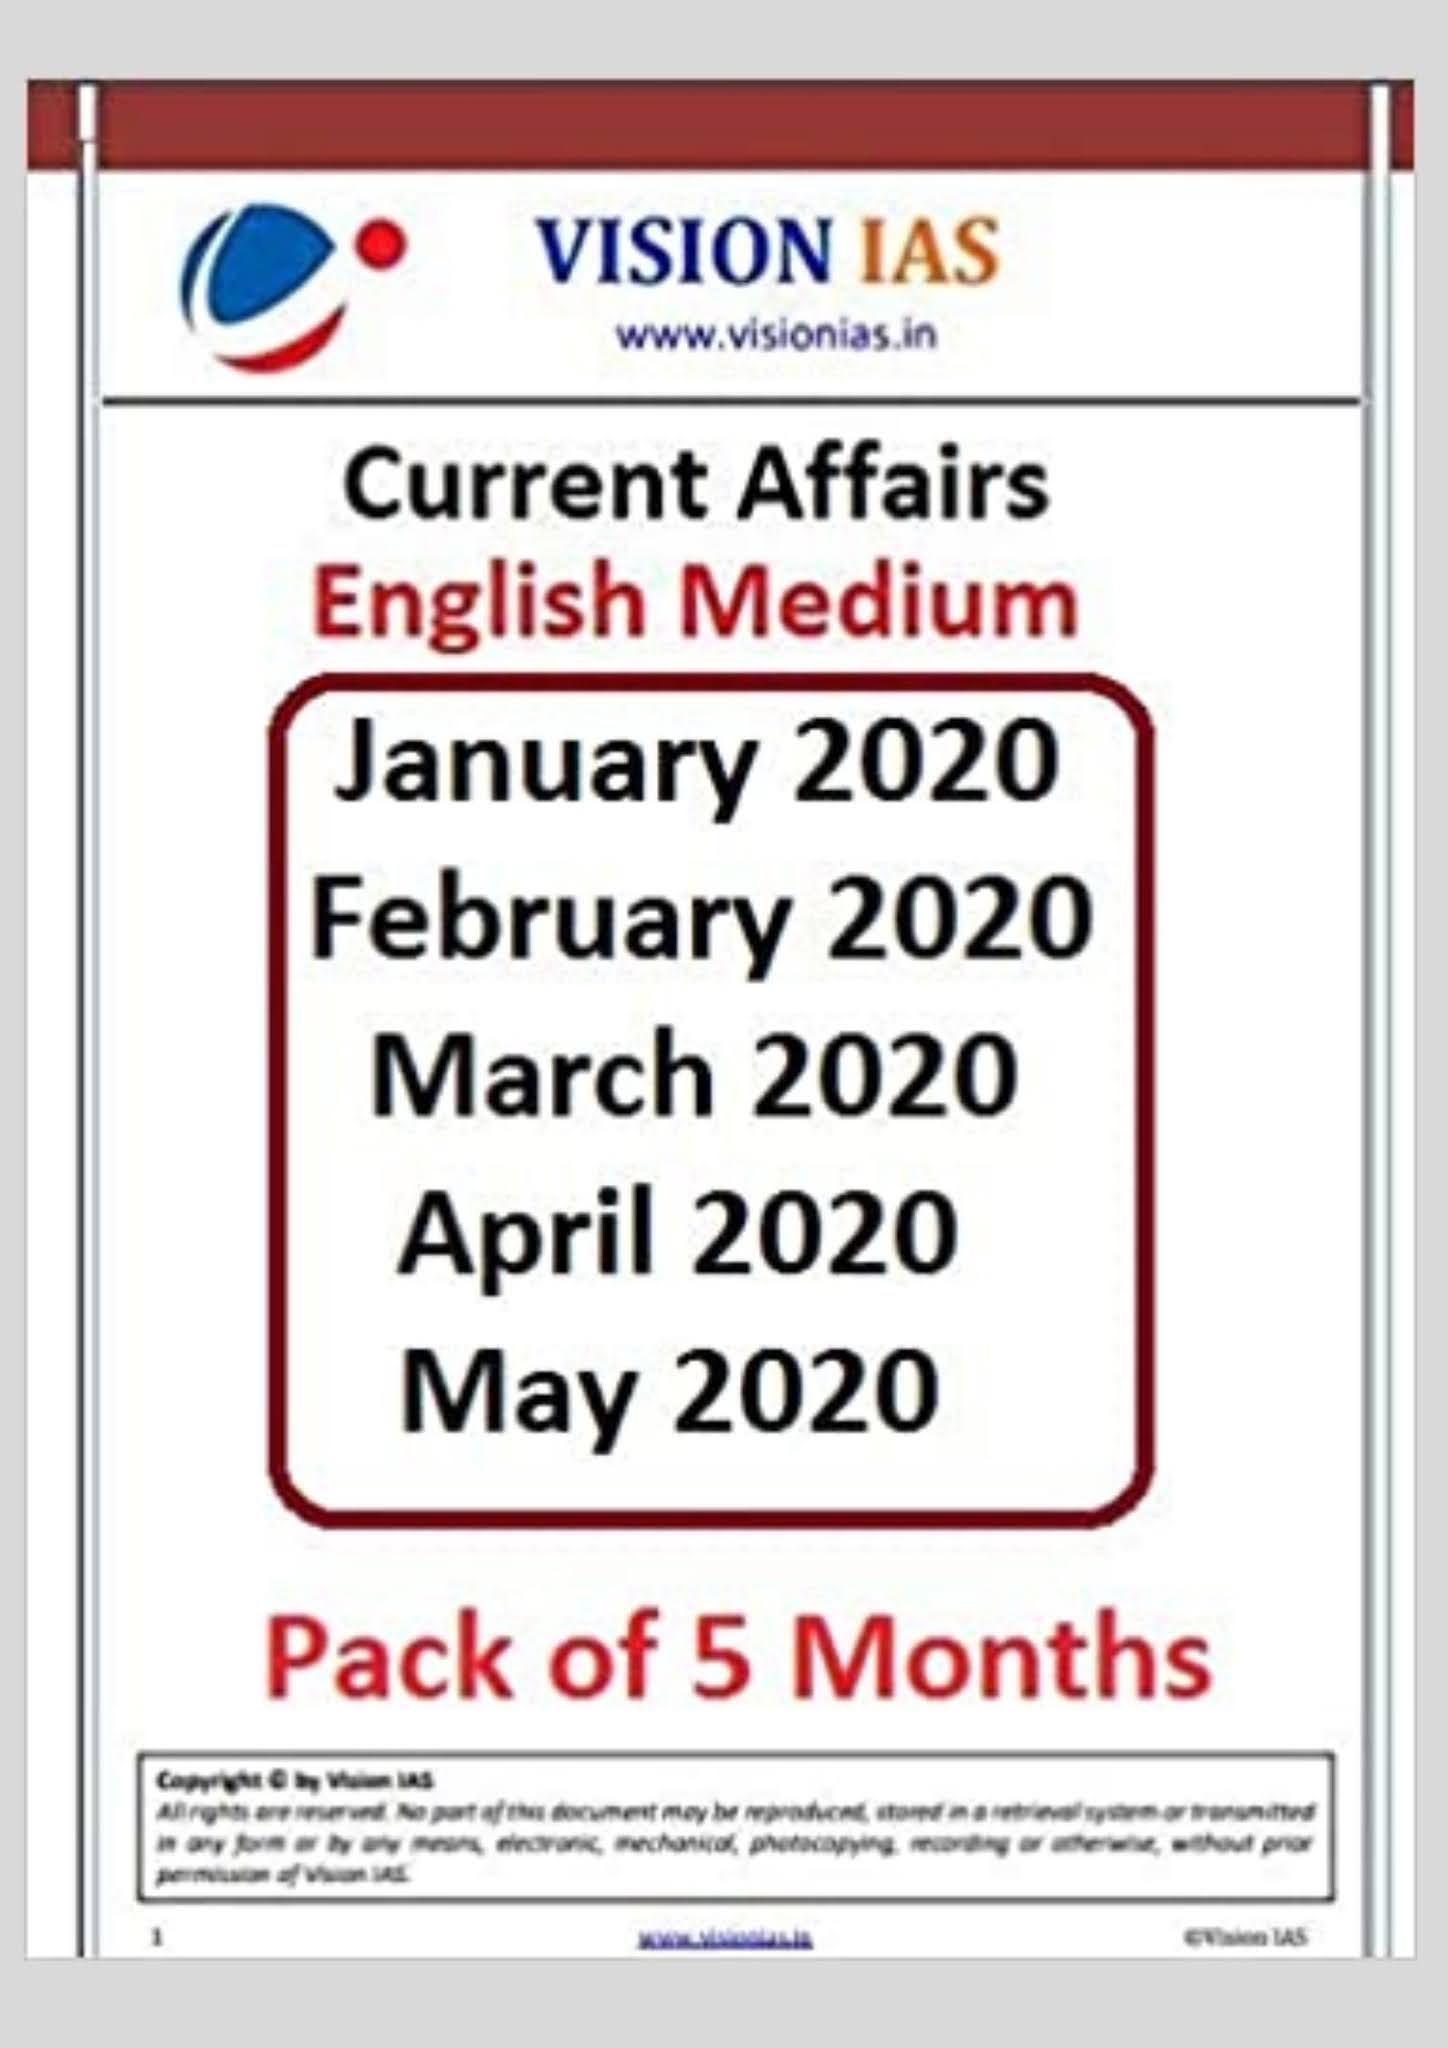 Vision IAS Current Affairs 2020 [Pack of 5 Months] at EasyJobsLive